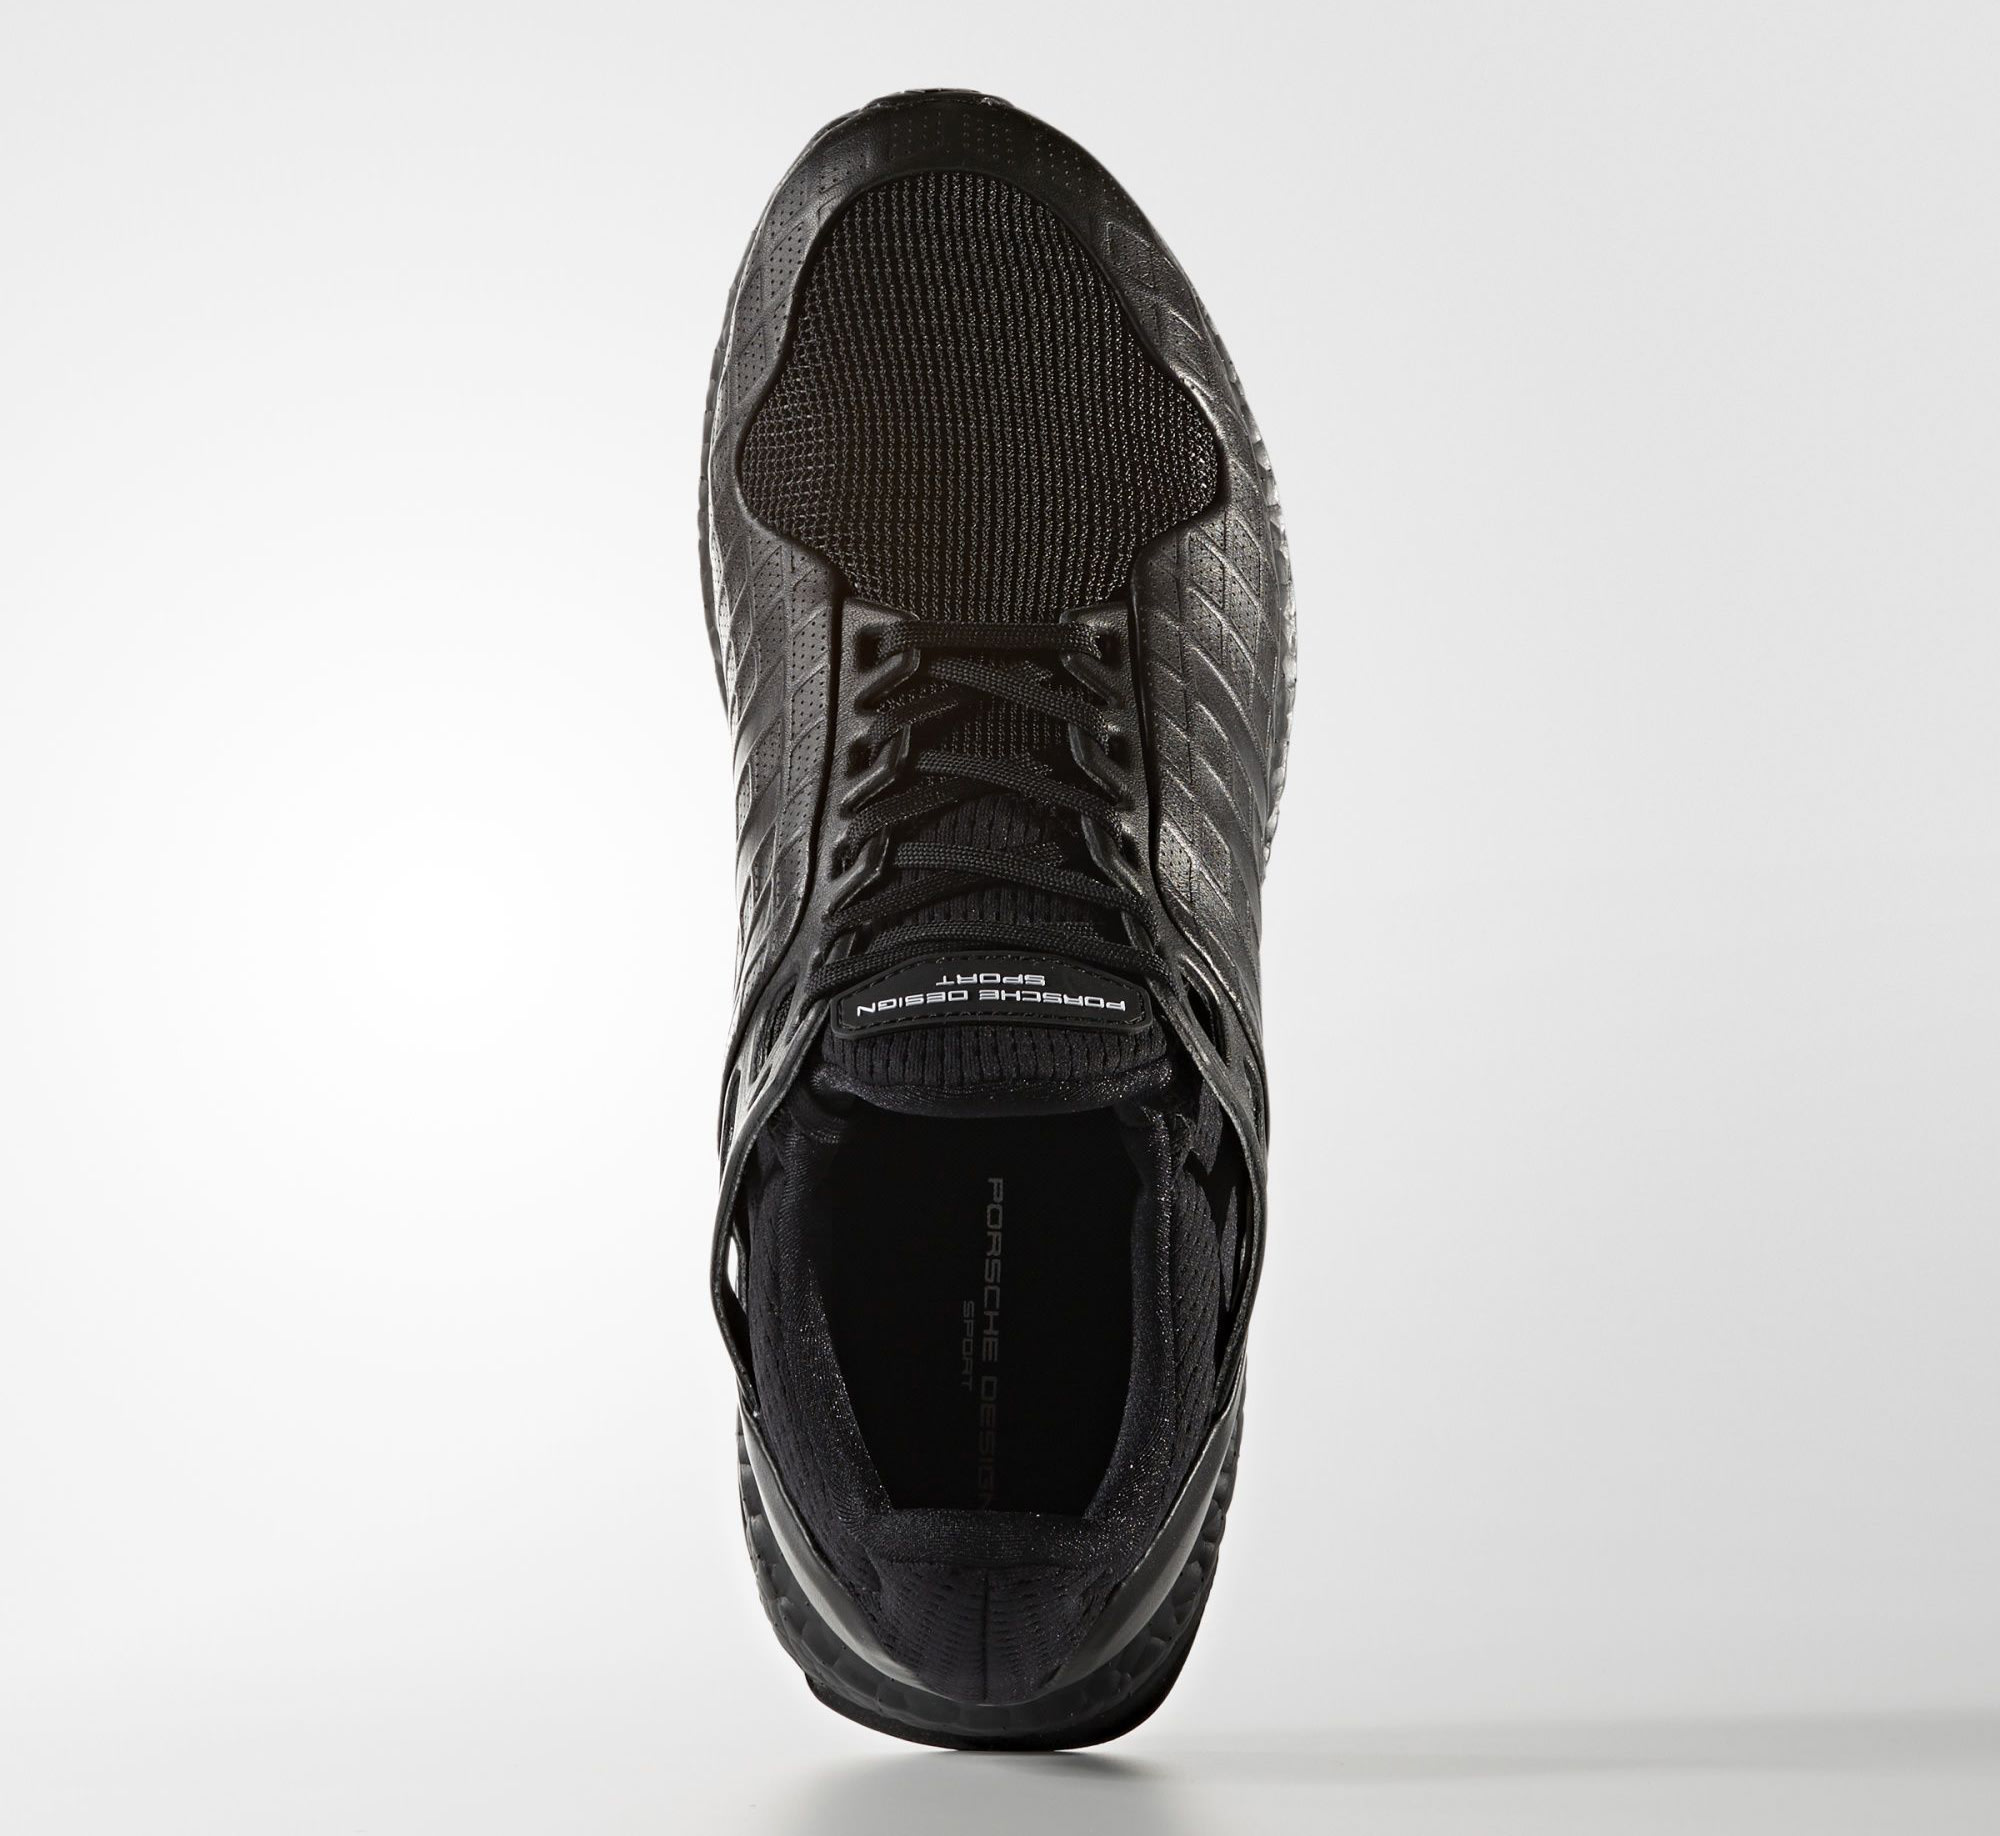 Triple Black Porsche Adidas Ulta Boost BB5537 Top